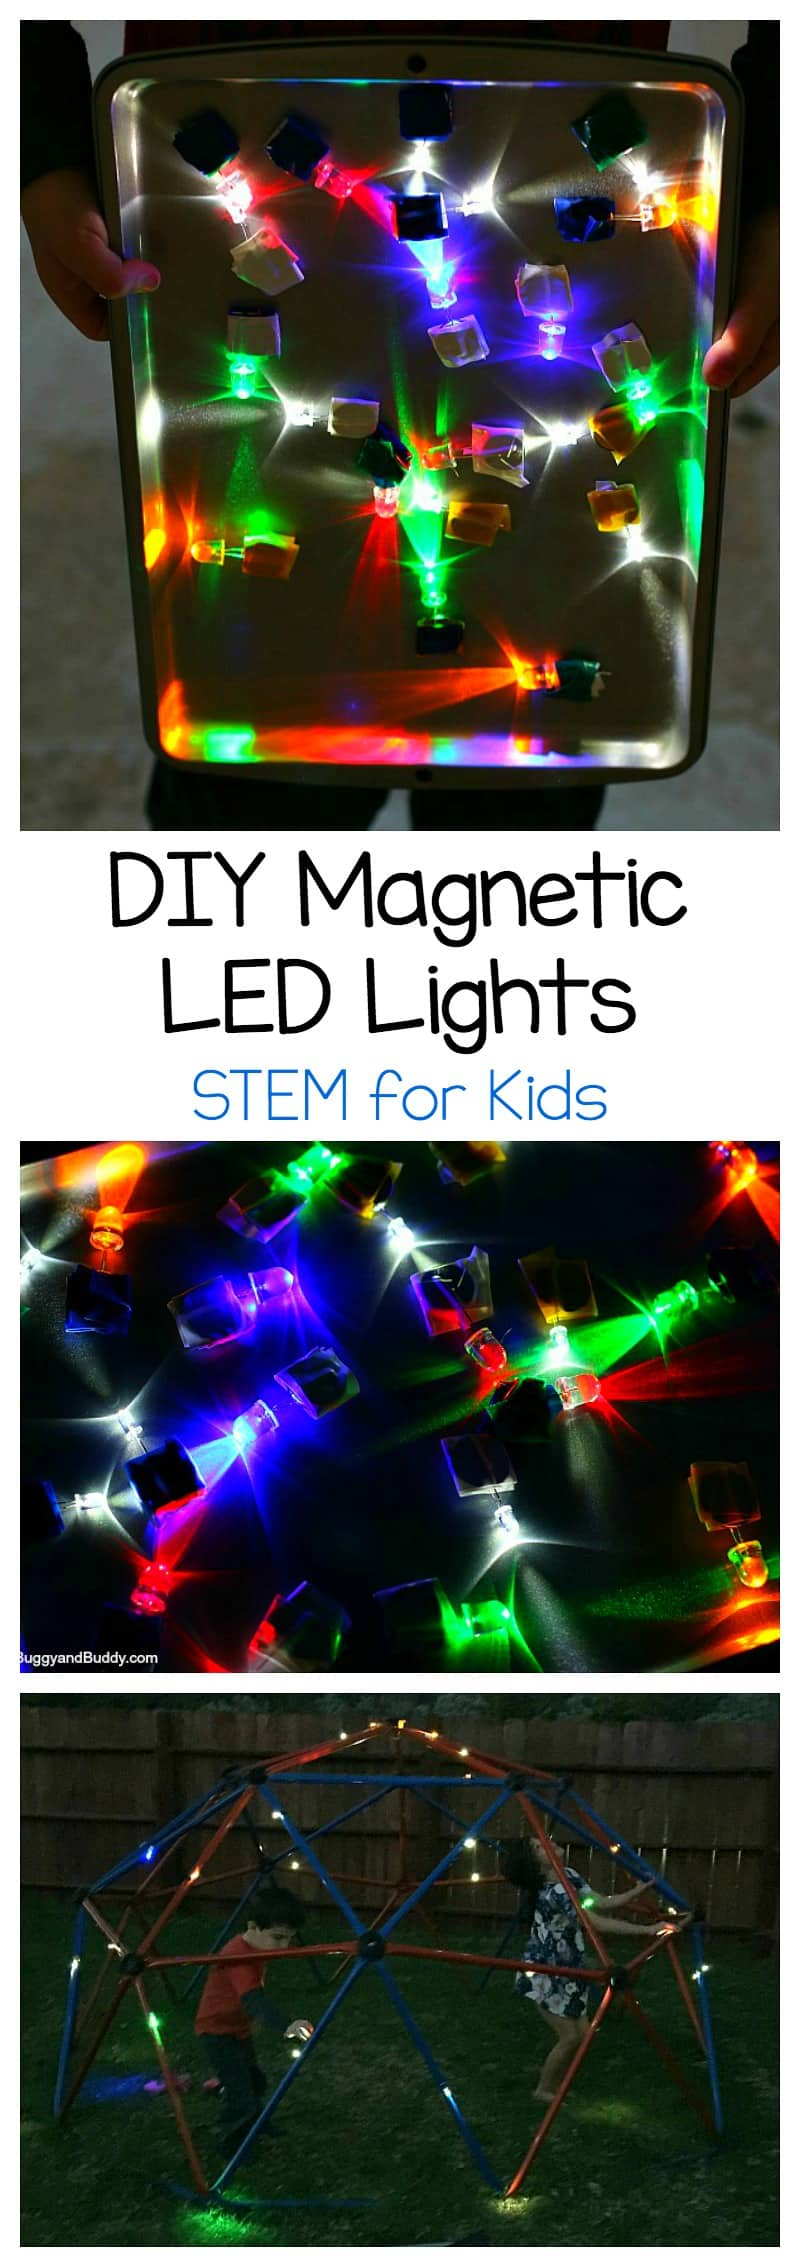 Science for Kids: Explore light, circuits, and magnetism by making your own magnetic LED lights in this super cool STEM / STEAM activity for children . ~ BuggyandBuddy.com